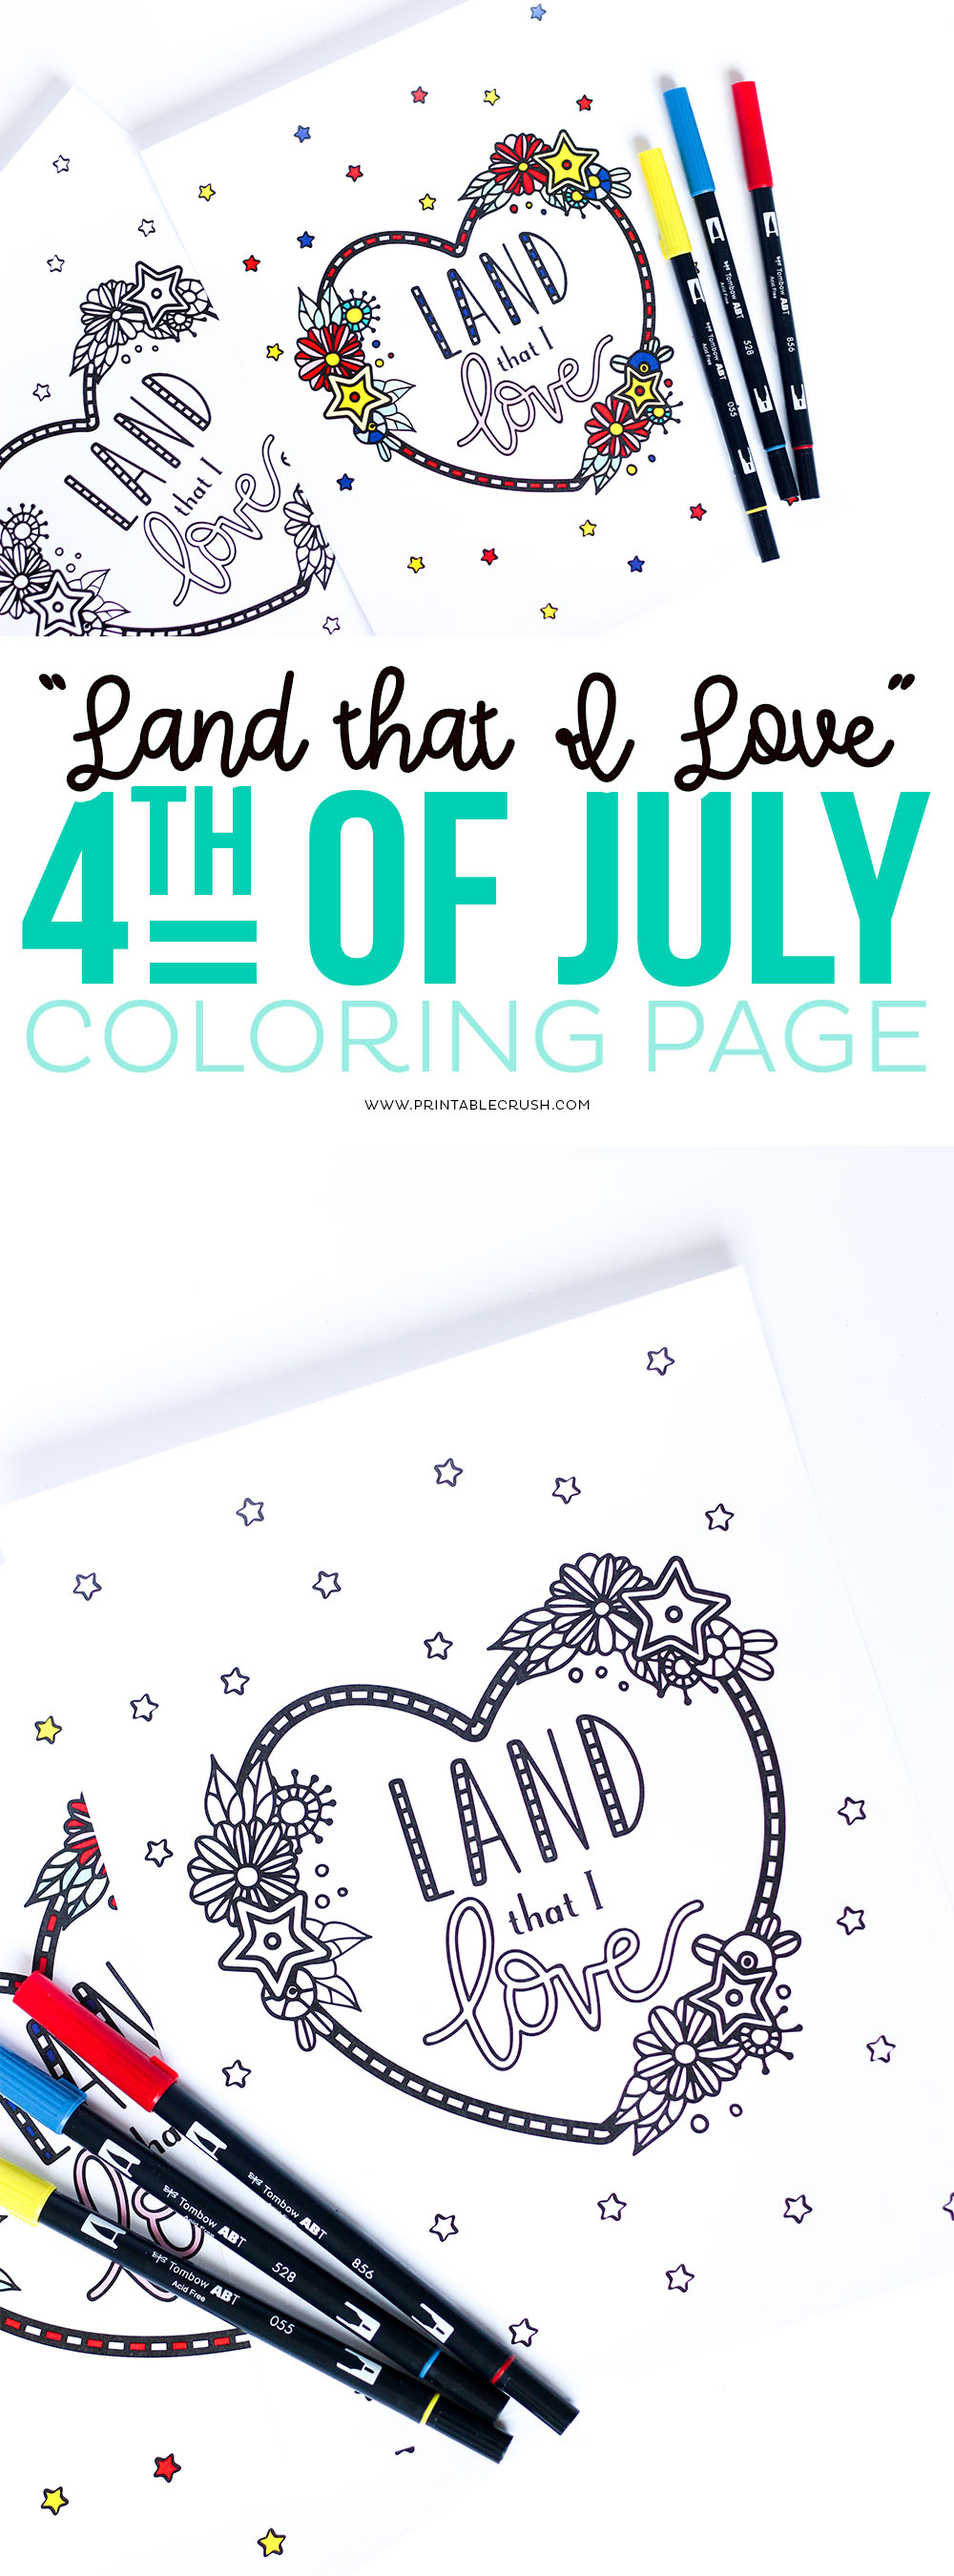 Download this free Land That I Love Fourth of July Coloring Page for a fun summer activity! Kids and adults will love this hand lettered and hand drawn design! #coloringpage #fourthofjuly #handlettered #adultcoloringbook #summercoloringpage via @printablecrush